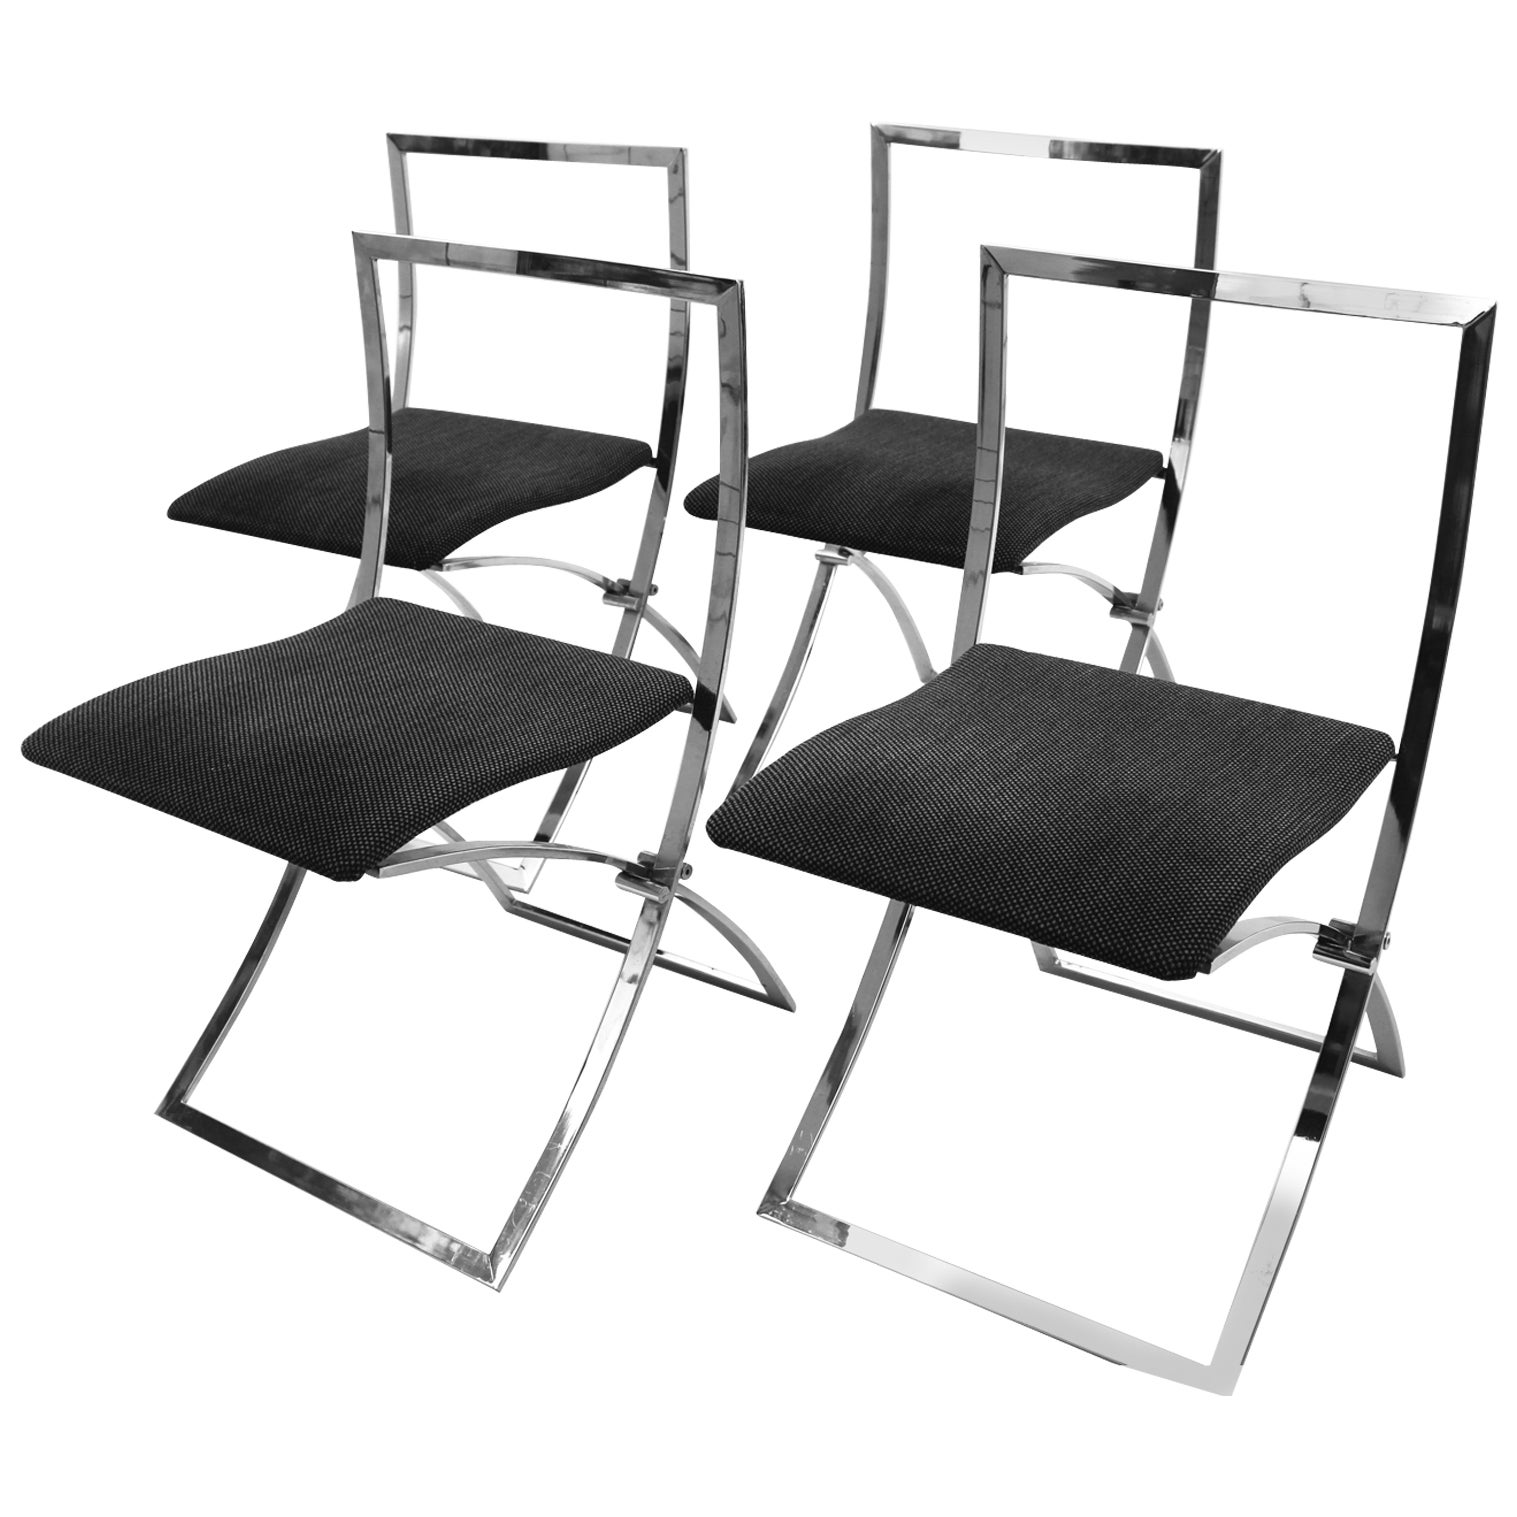 Mid Century Modern Chromed Foldable Vintage Chairs by Marcello Cuneo 1970 Italy